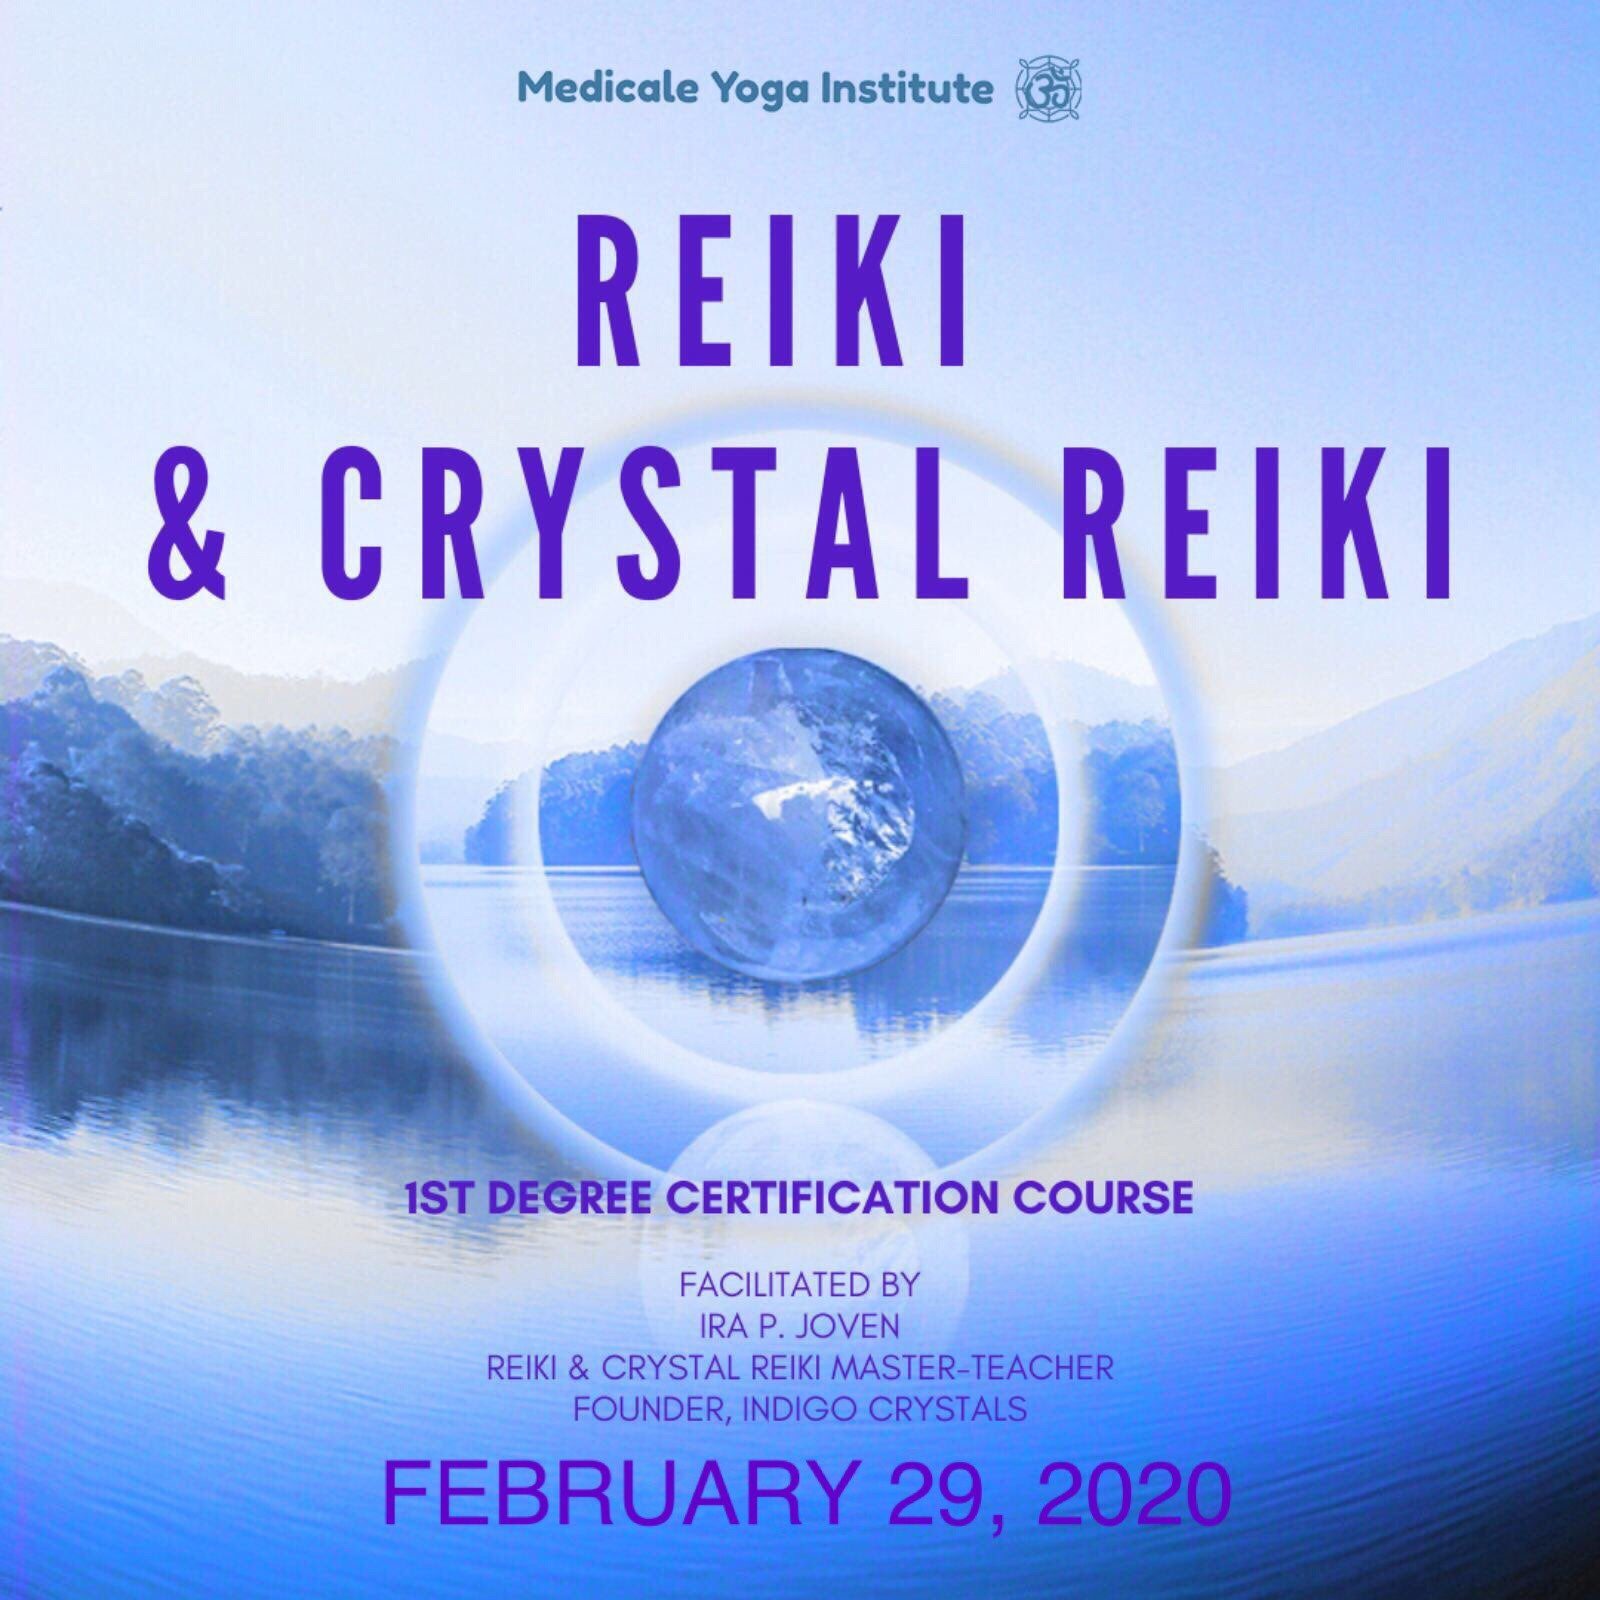 REIKI AND CRYSTAL REIKI - 1ST DEGREE CERTIFICATION COURSE